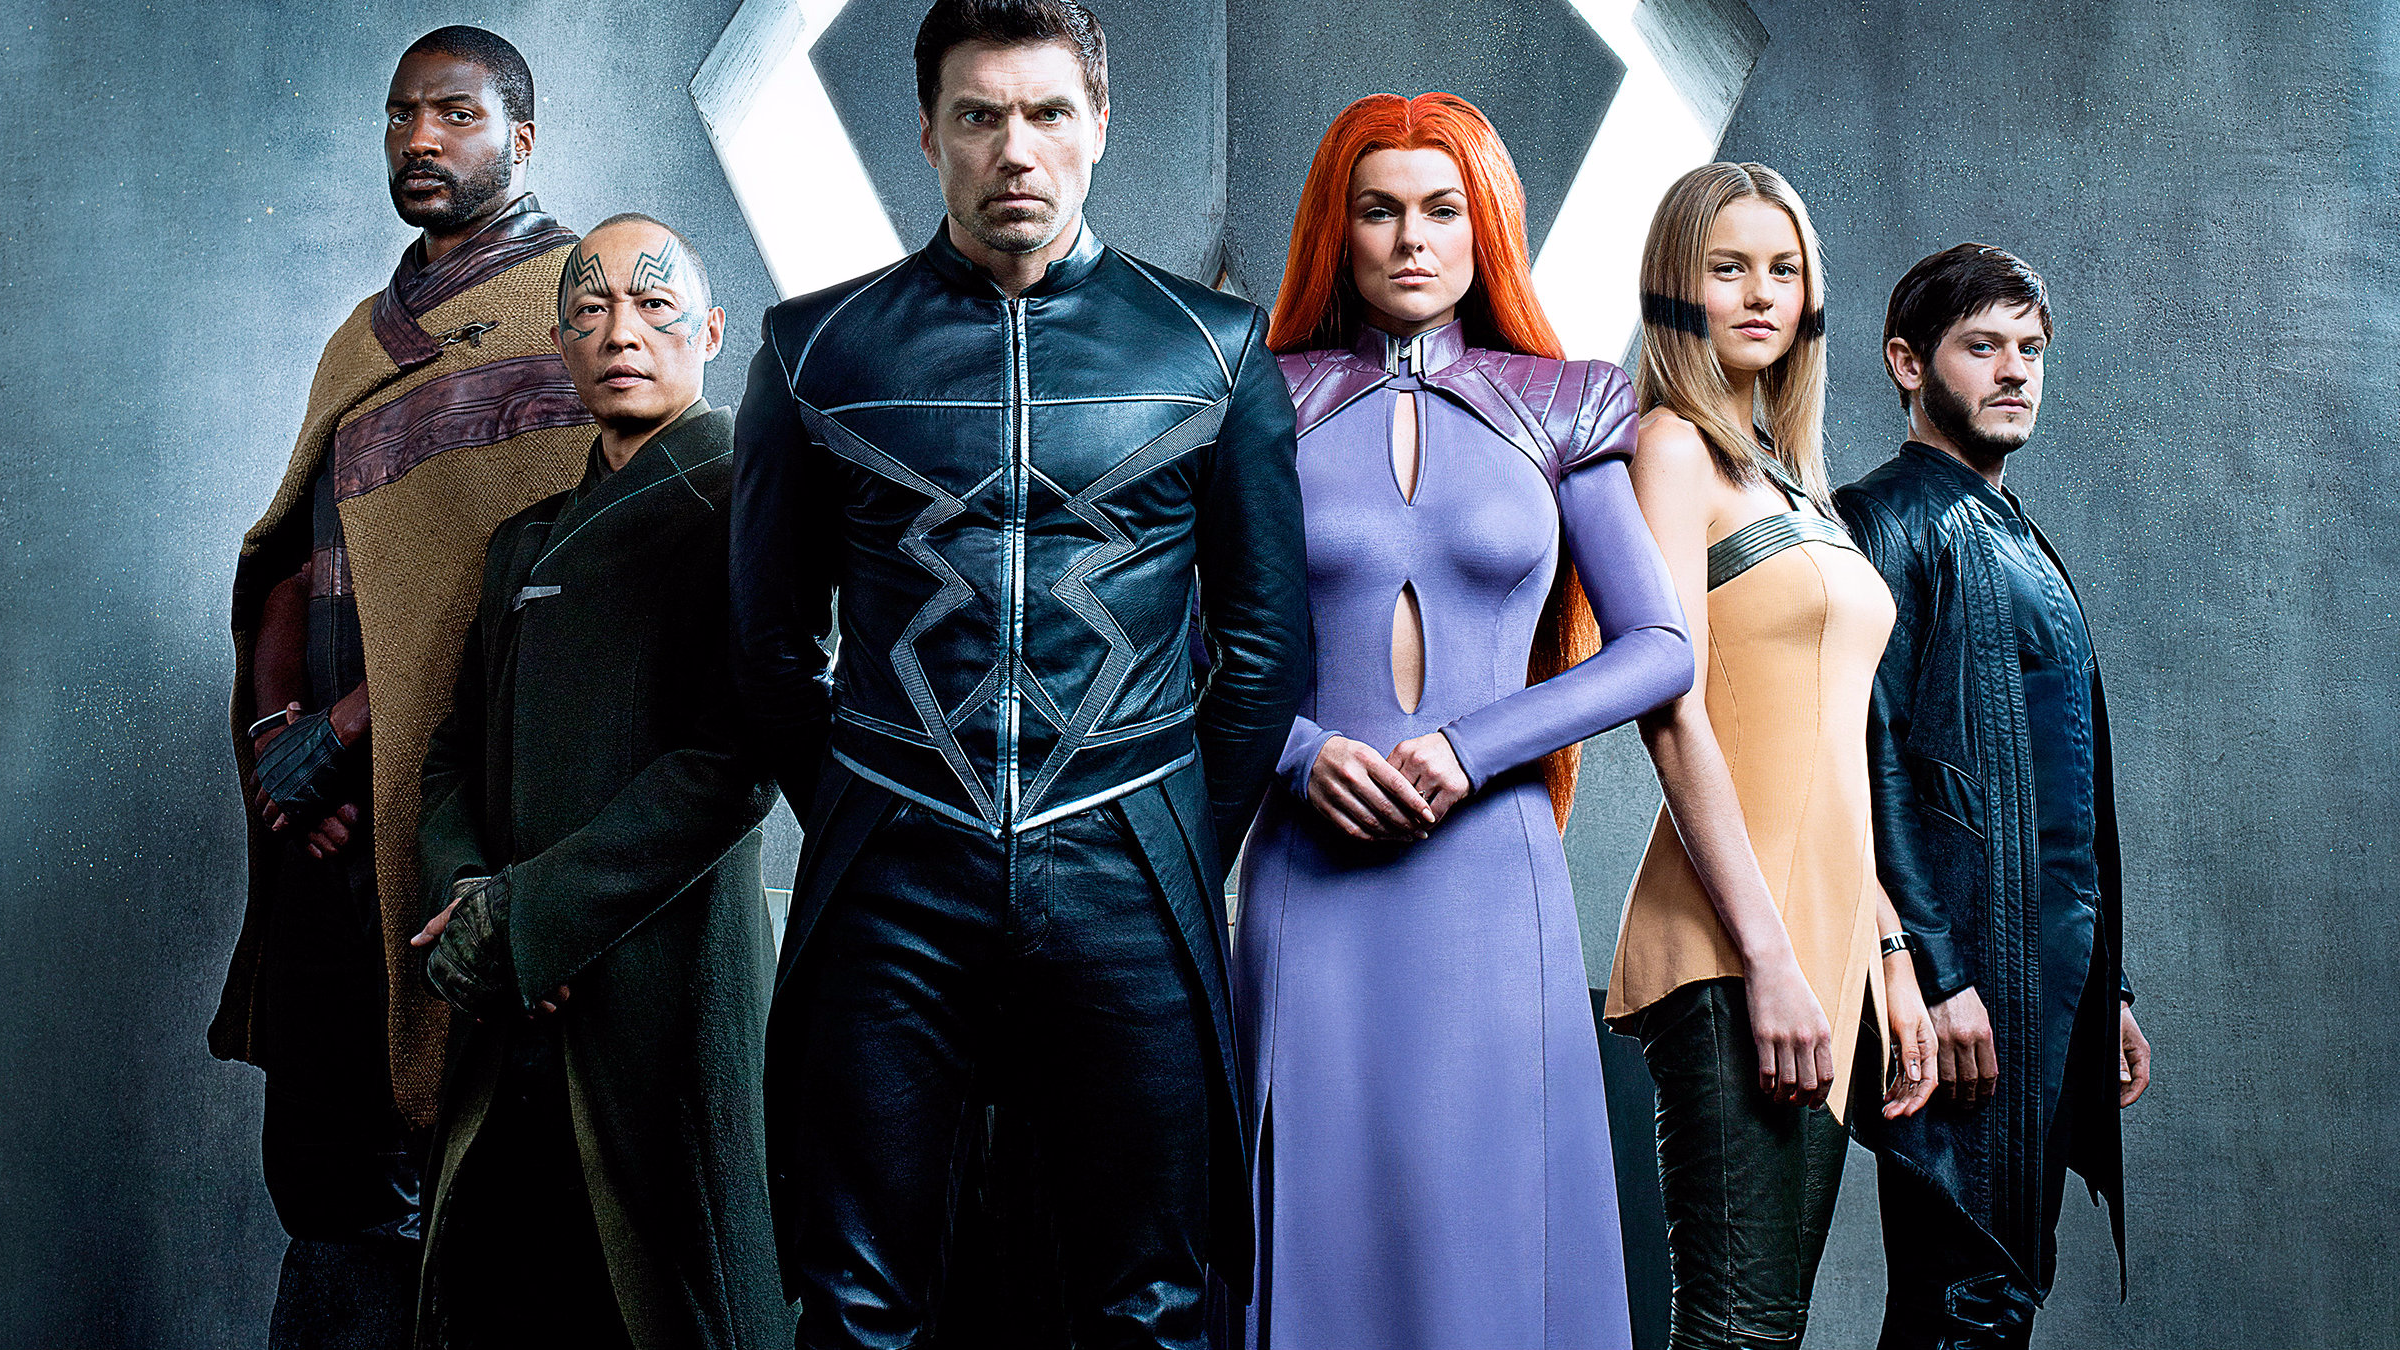 It's Cool, The Inhumans' Director Didn't Like The First Trailer Either